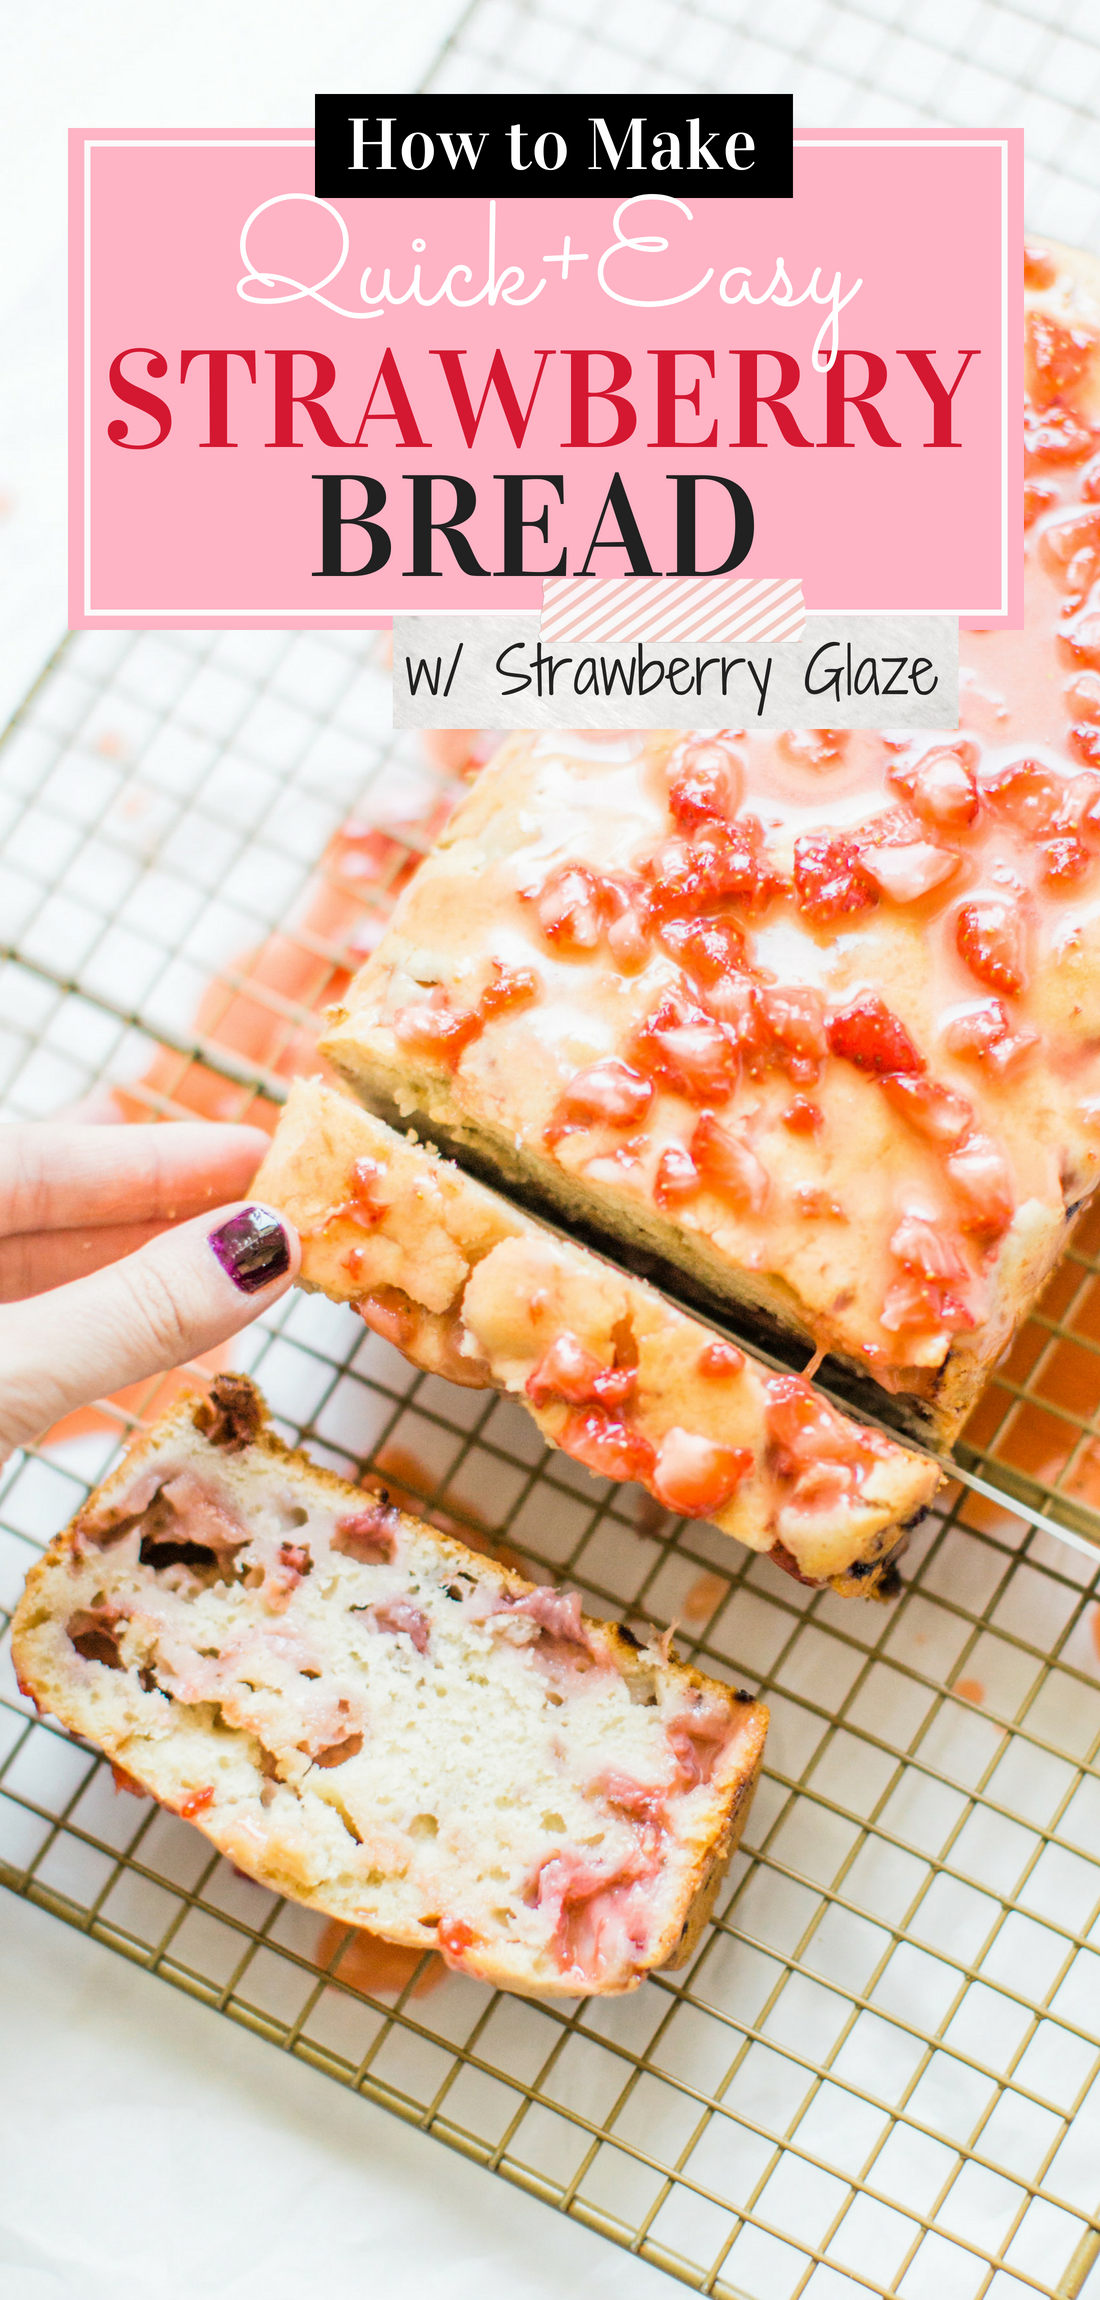 If you love strawberries, you are going to go crazy for this knock-your-socks-off easy and delicious strawberry bread with a decadent strawberry glaze. This quick bread recipe comes together in just 10 minutes, and will impress EVERYONE. #strawberrybread #quickbread #dessert #strawberrycake Click through for the recipe. | glitterinc.com | @glitterinc